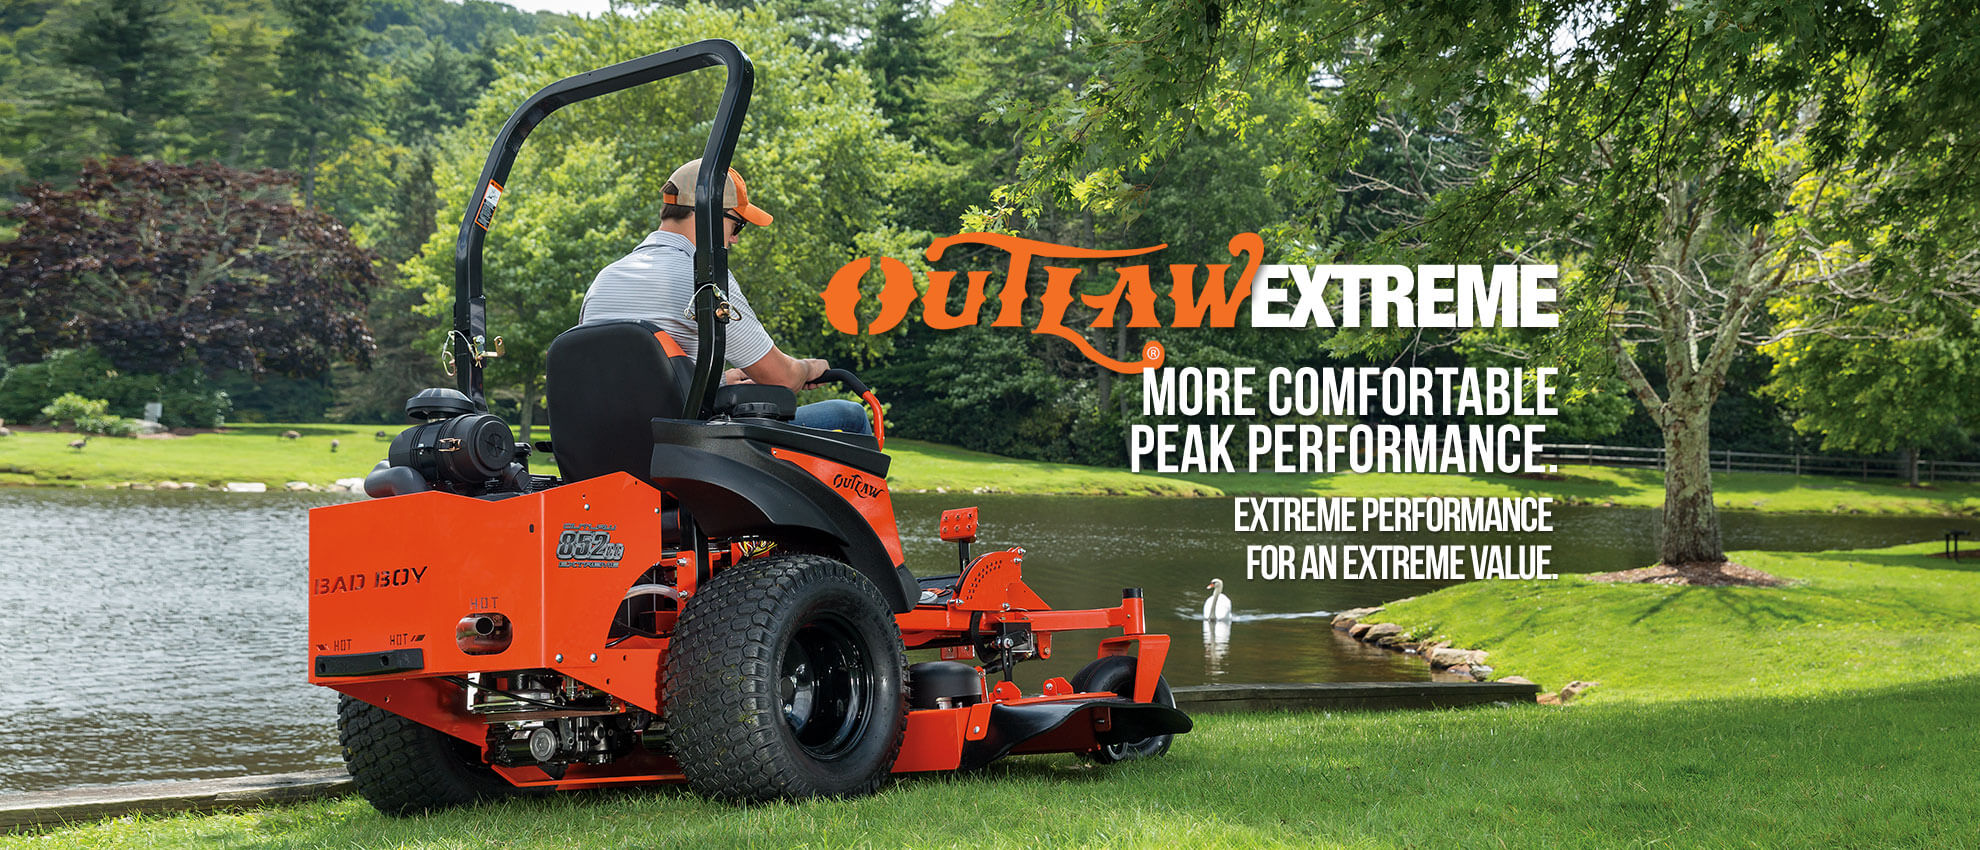 Stand Behind Lawn Mower >> Bad Boy Mower OUTLAW EXTREME SERIES